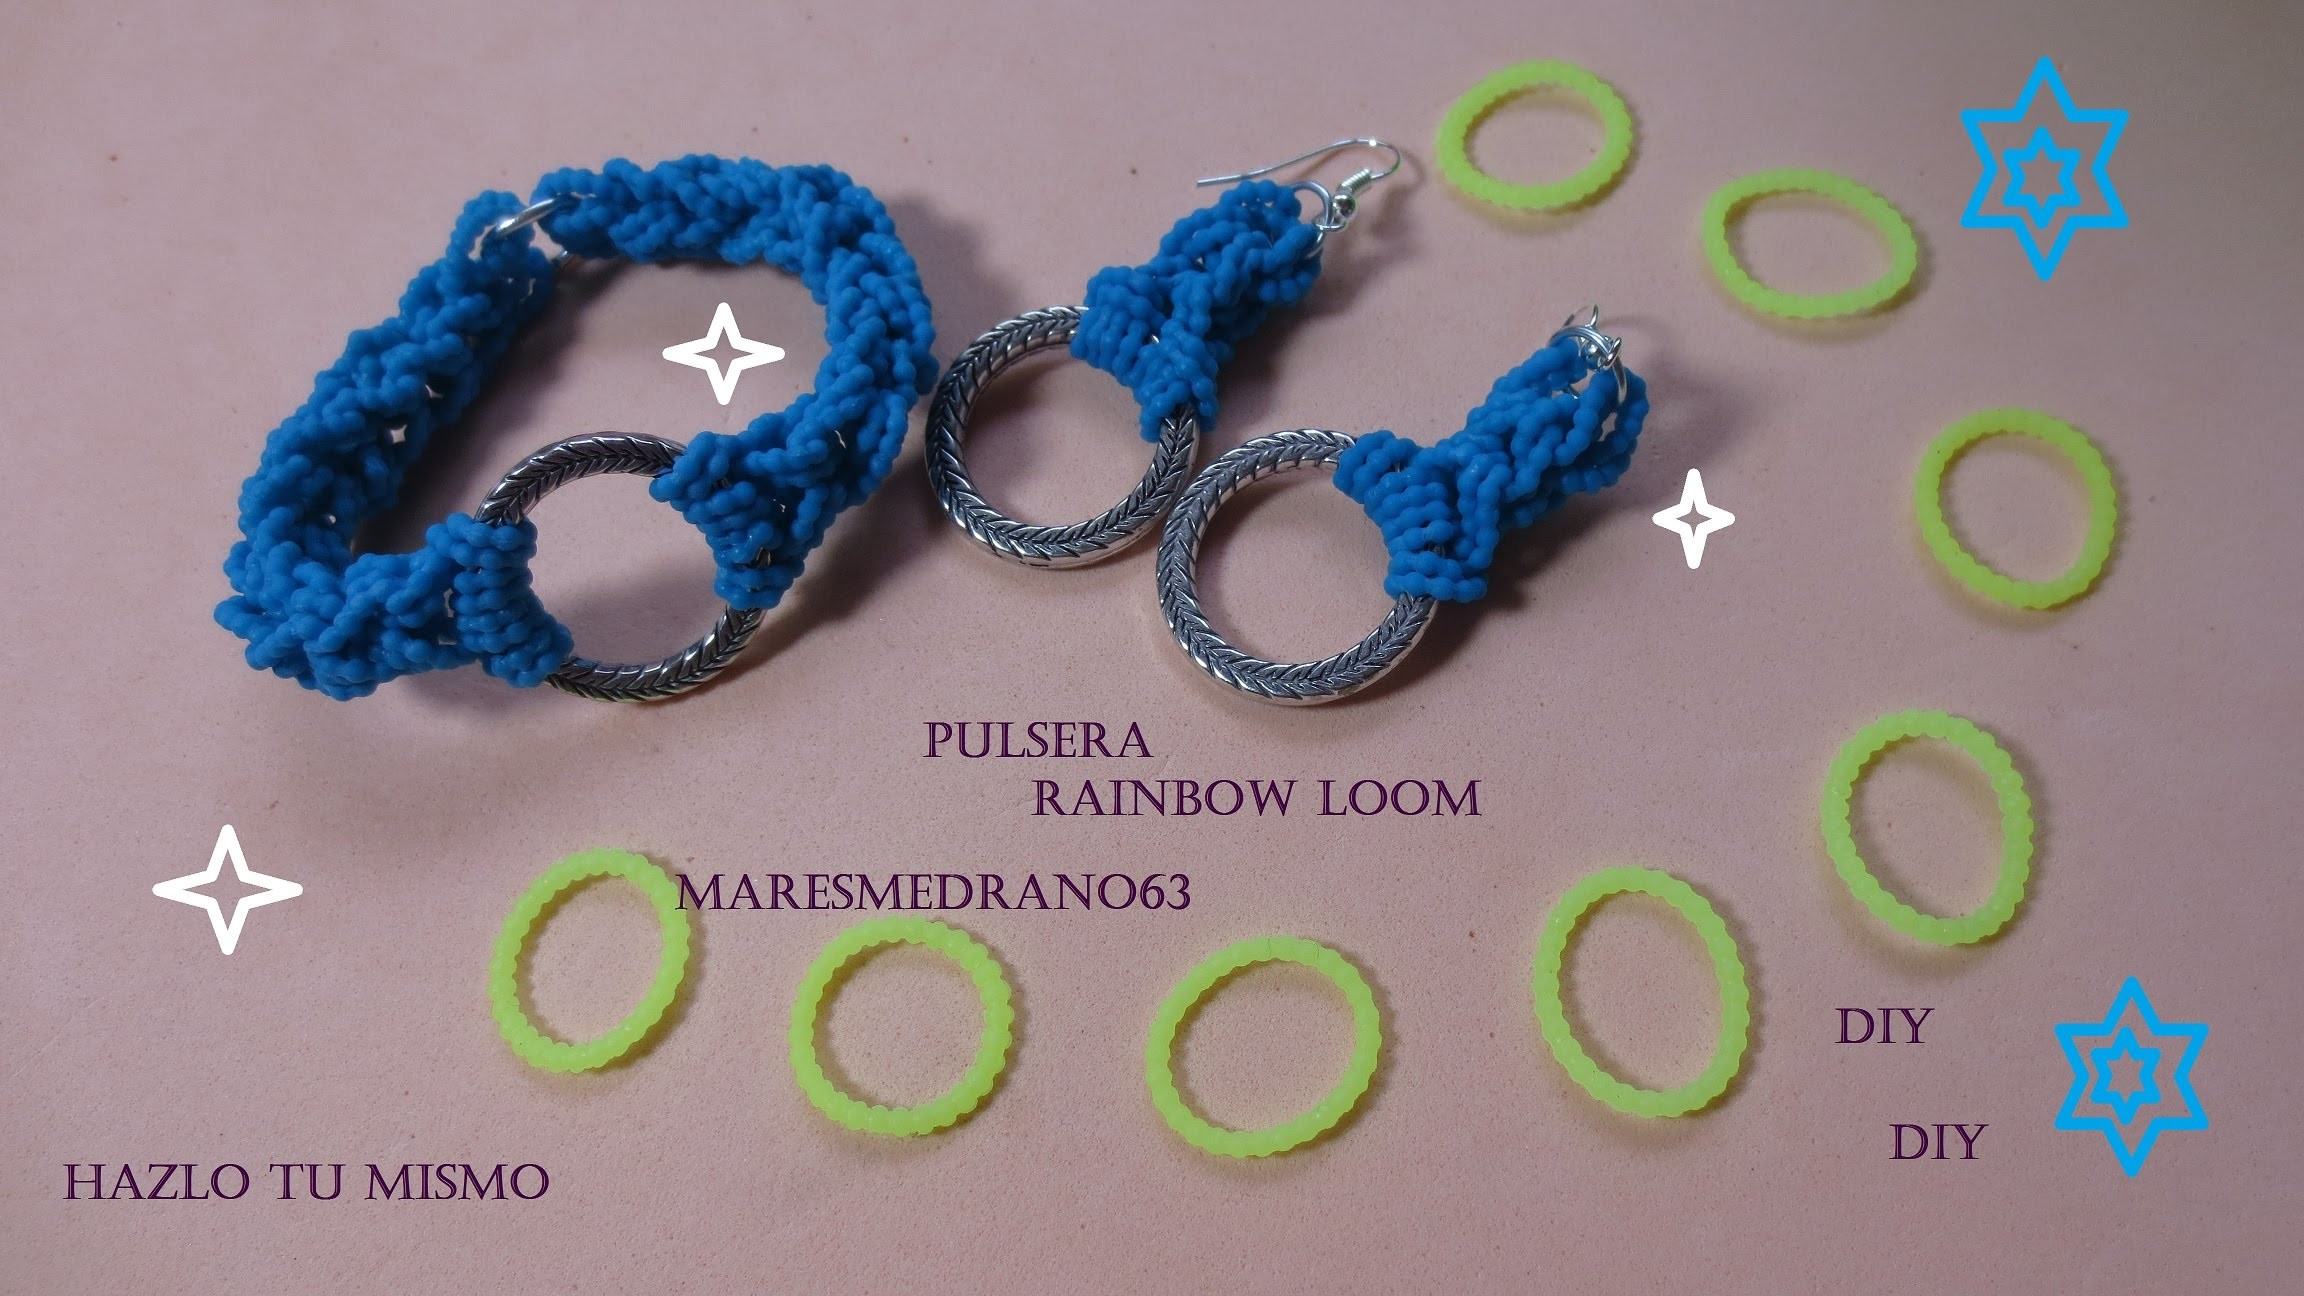 Pulsera de color turquesa Rainbow loom